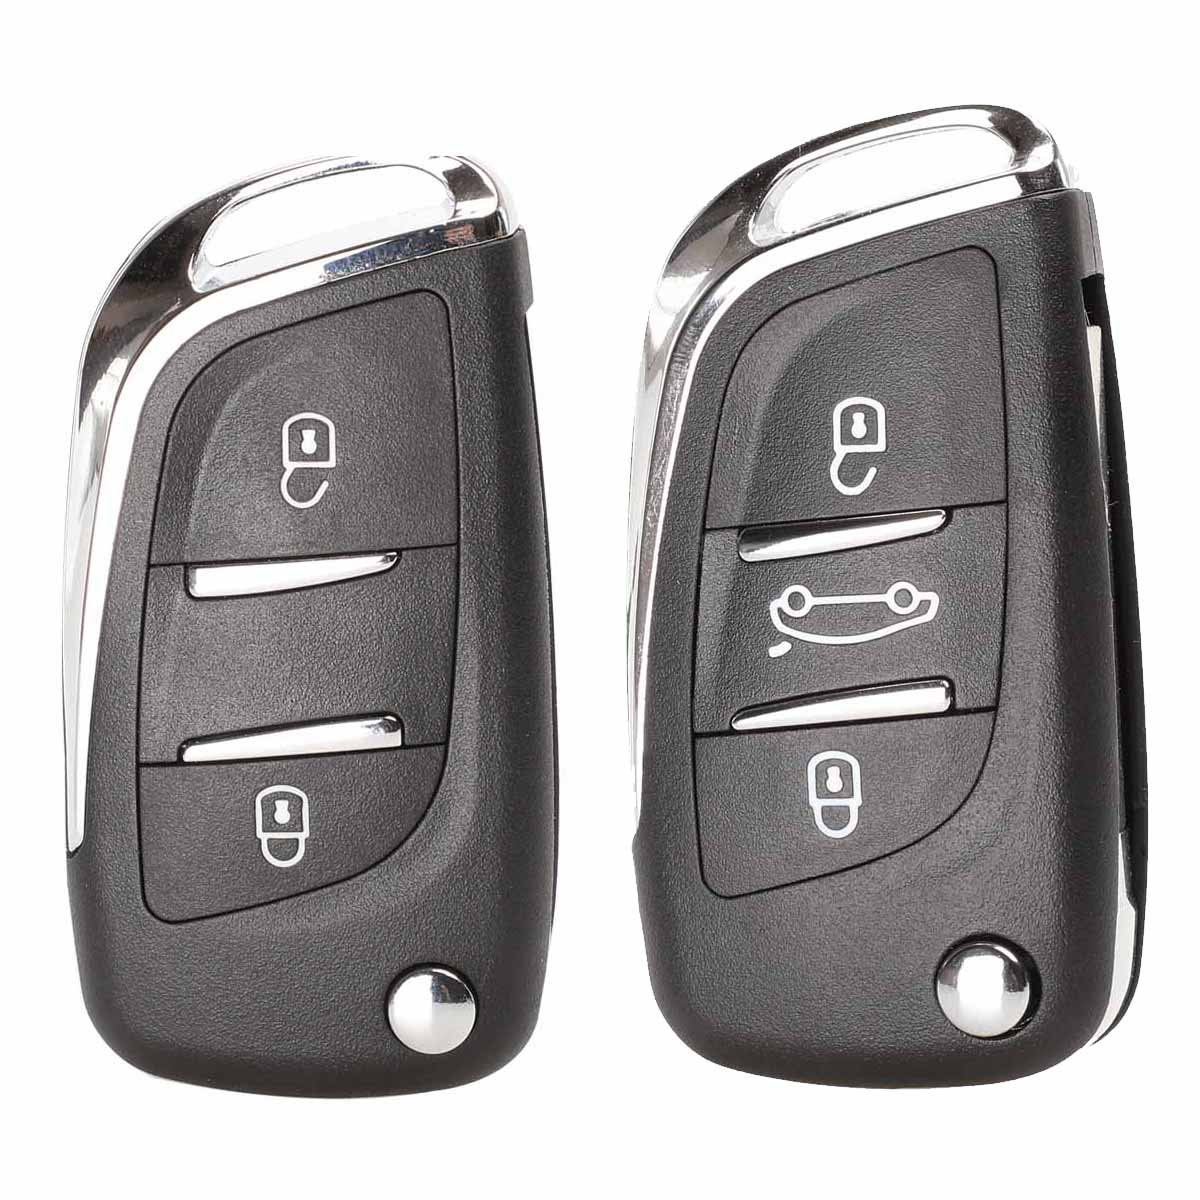 Jingyuqin Folding Flip Remote Car Key Shell CE0536 For Peugeot 407 307 408 308 CITROEN C2 C3 C4 C5 C6 XSARA GRAND PICASSO Groove